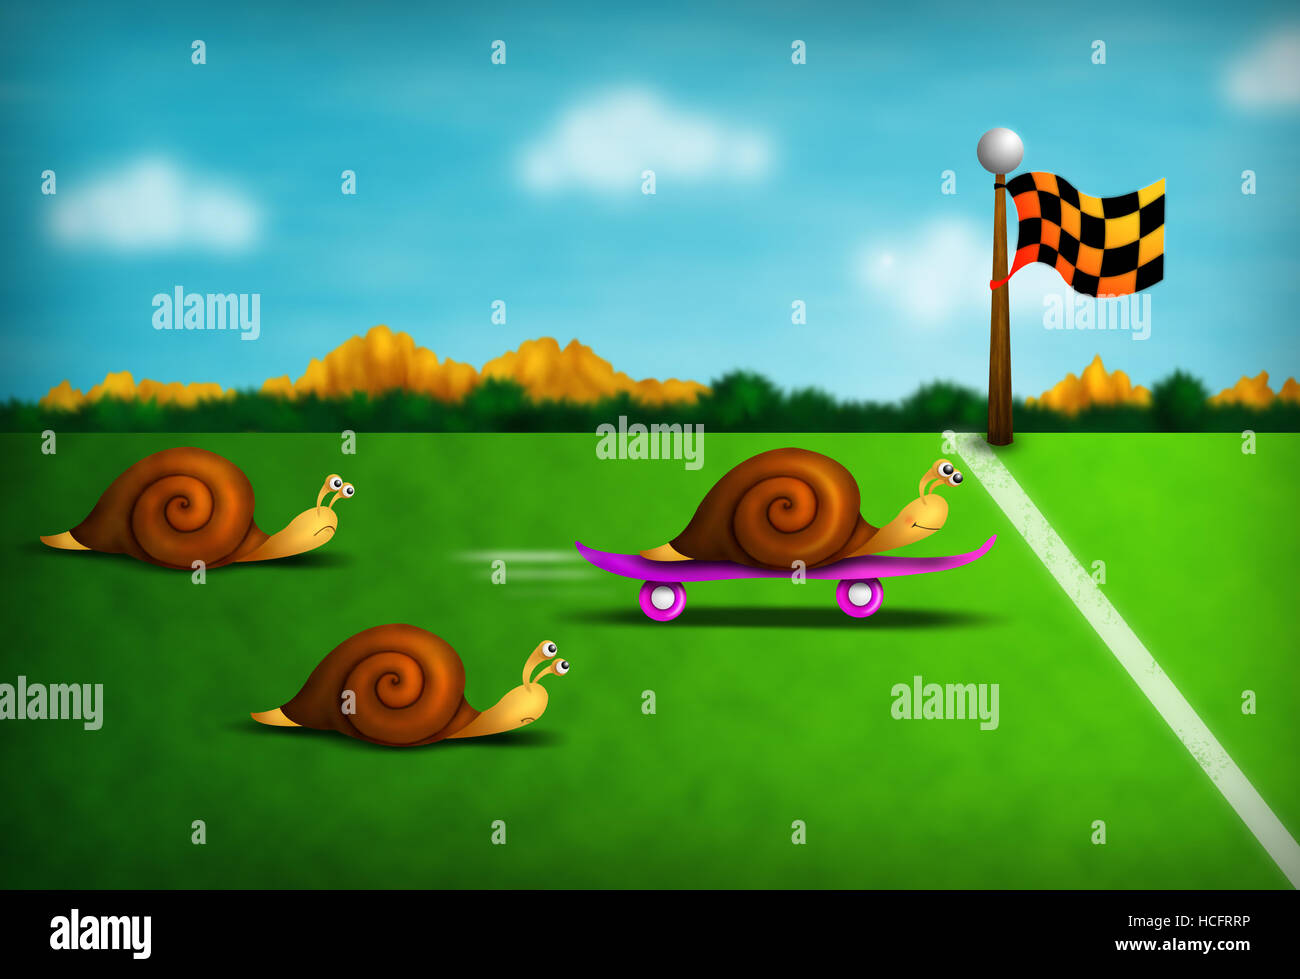 funny colorful illustration with racing snails including one outrageous cheat - Stock Image